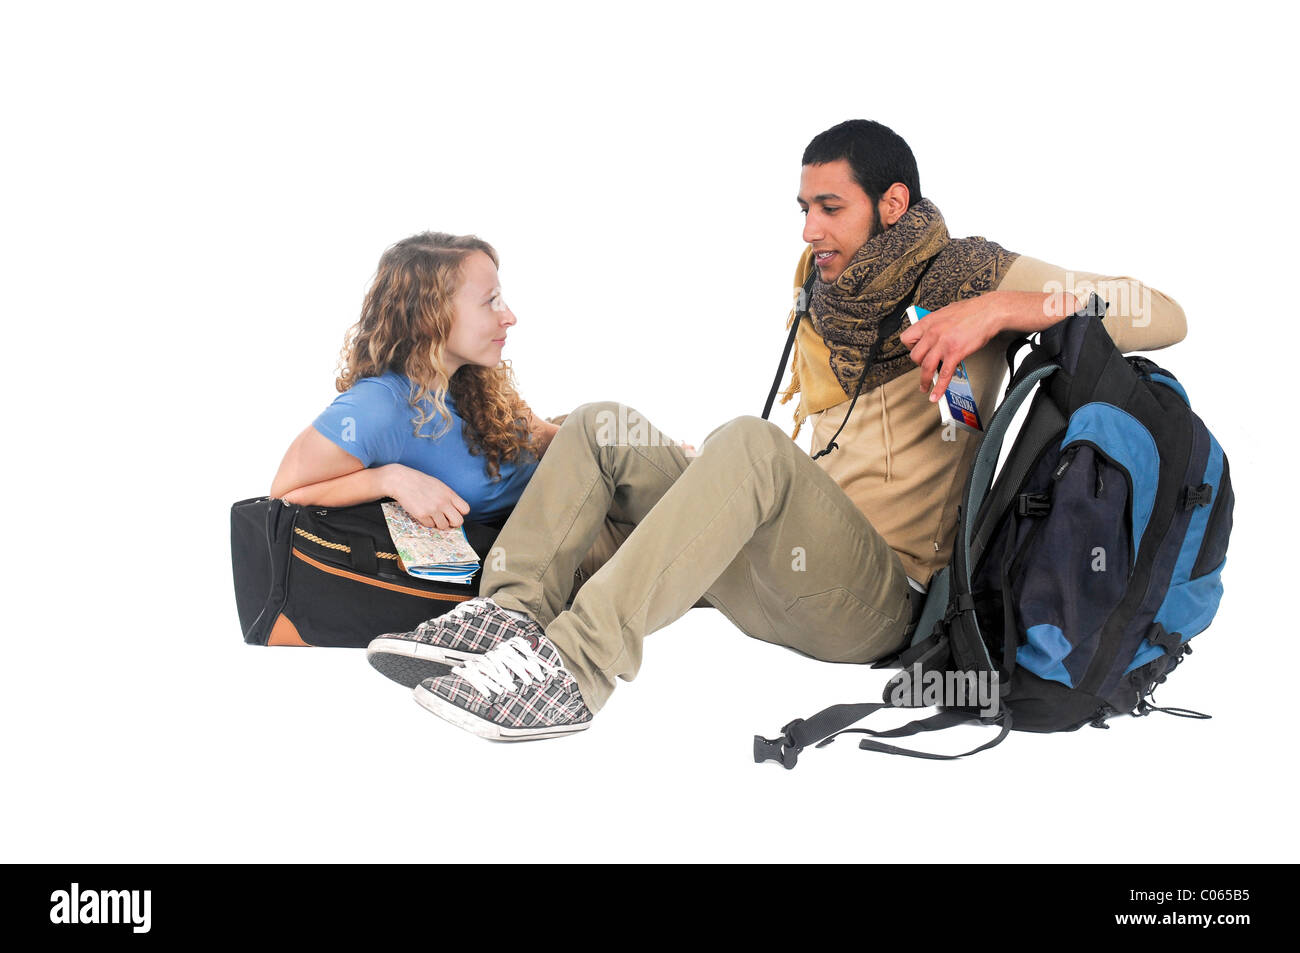 young backpacker couple at rest On white Background - Stock Image